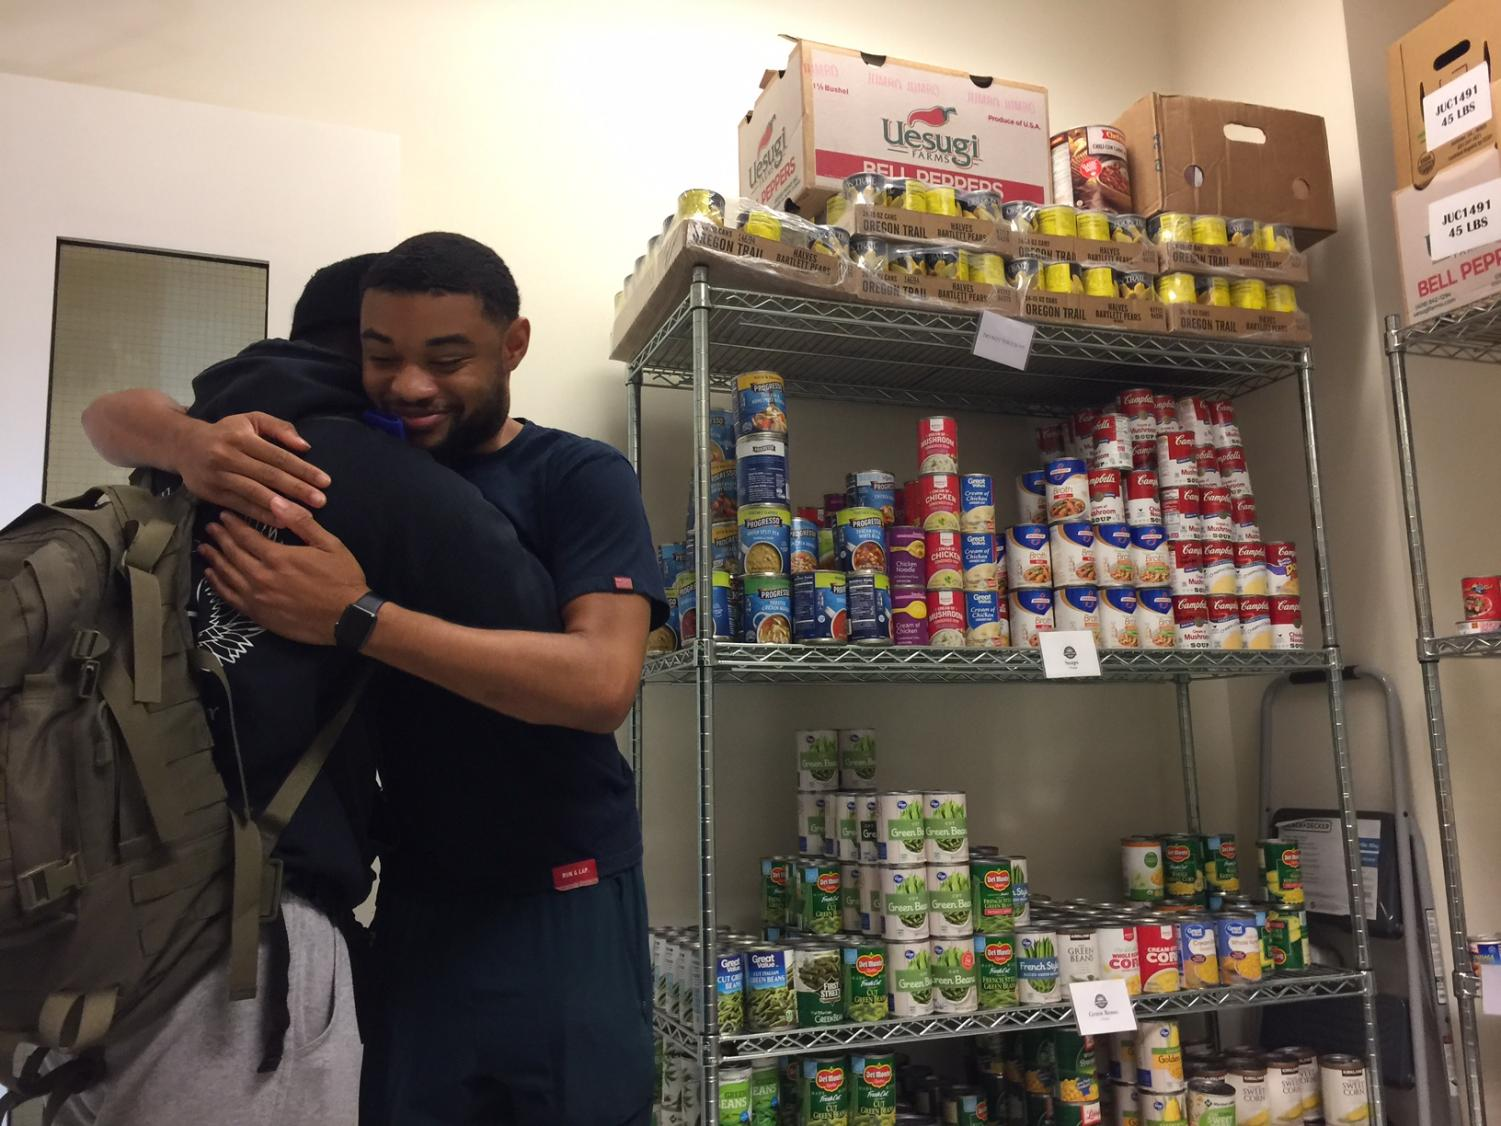 Sebastian Alejandro  Araque Vera,19, Chemistry major, and Isaiah Robinson, 20, Computer Science major and assistant at the Warrior Food Pantry,  thankful the day before Thanksgiving.